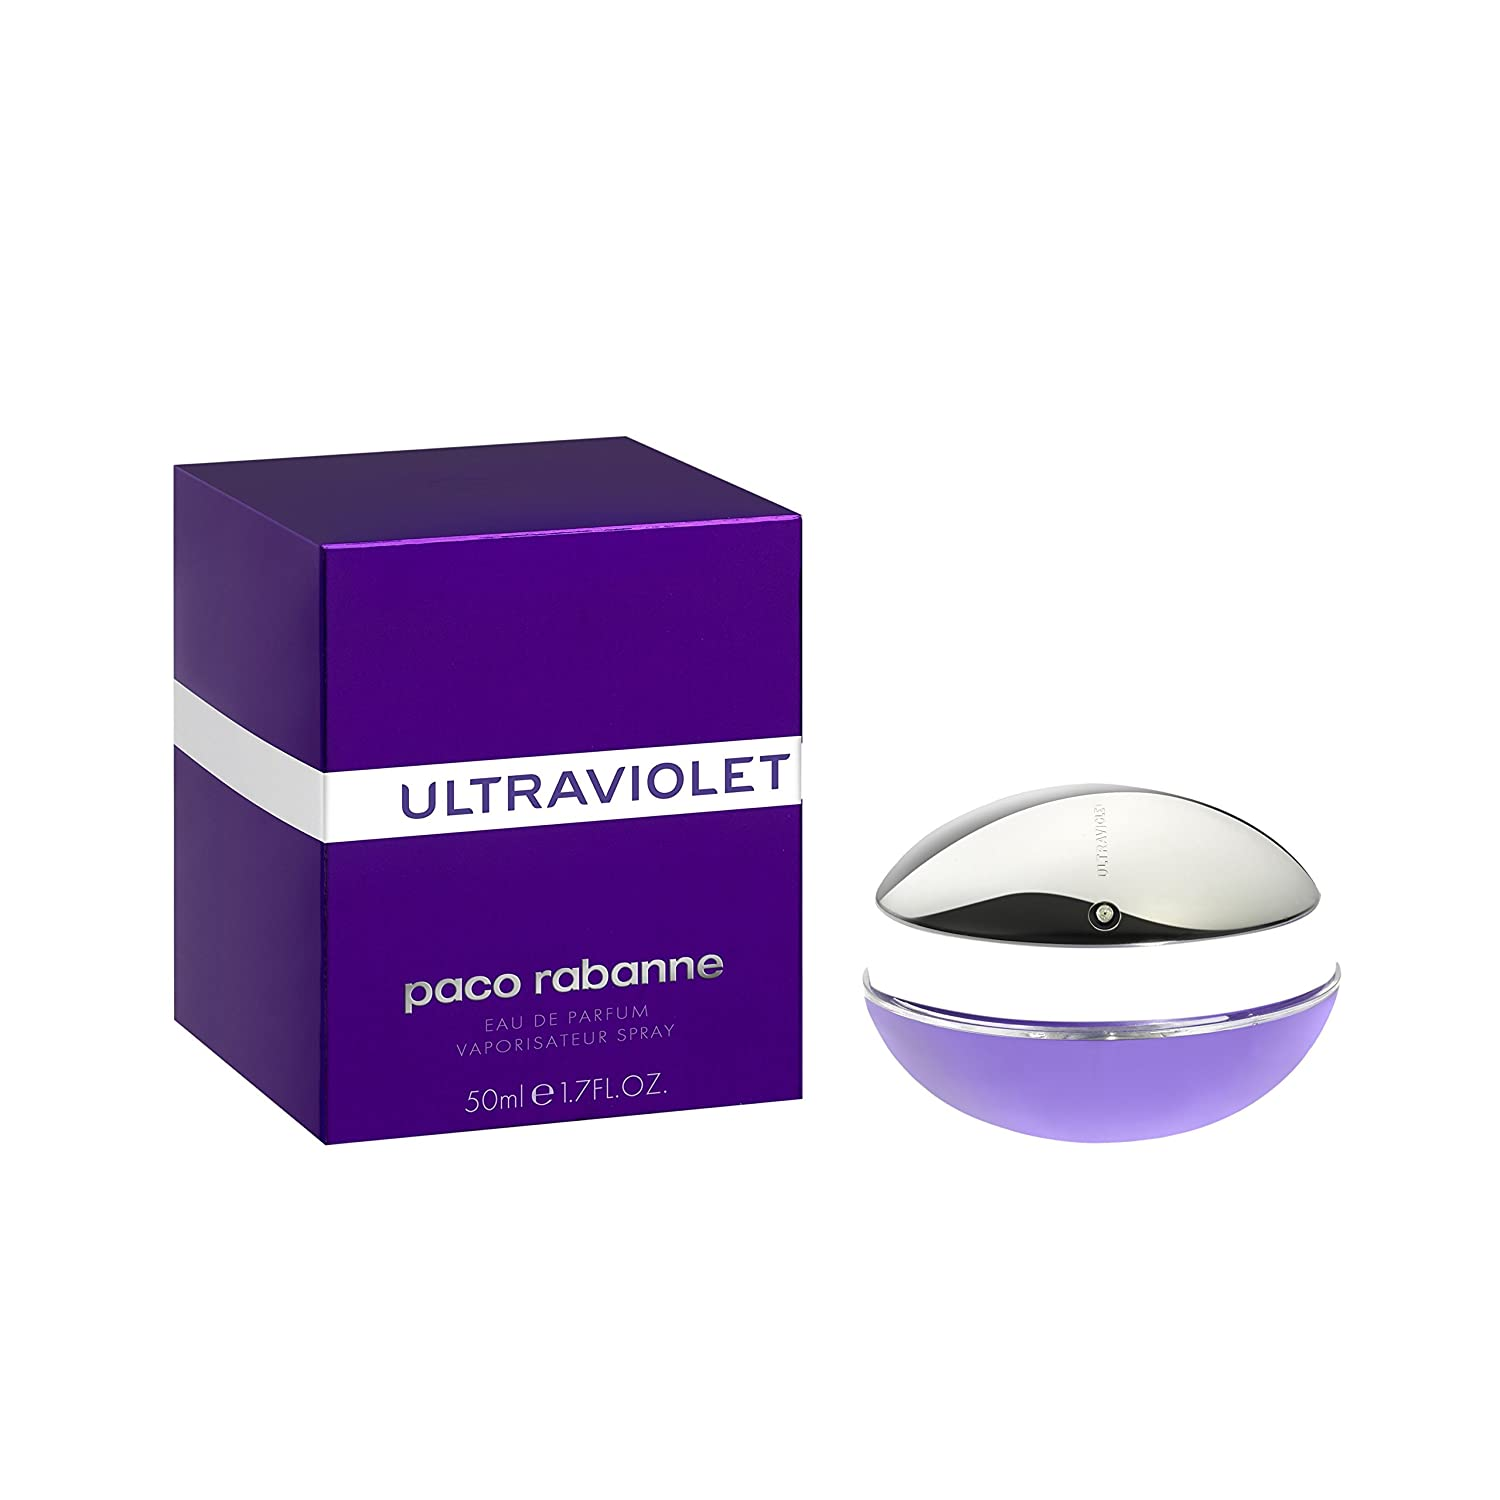 Perfume Ultraviolet: description of the fragrance, reviews. Perfumery Paco Rabanne Ultraviolet water 83